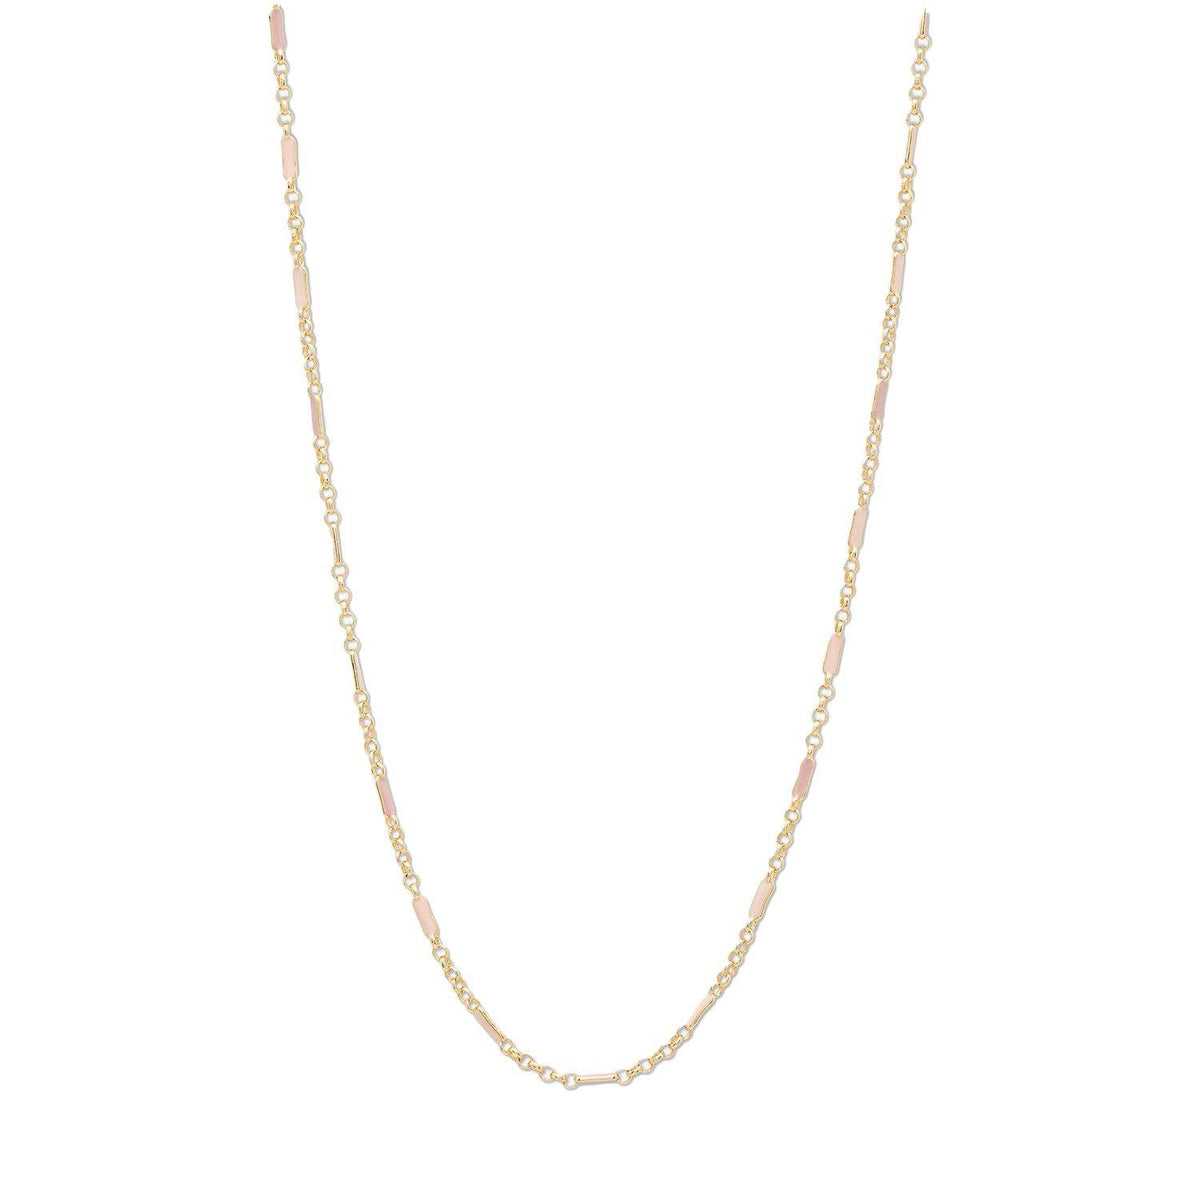 Amalfi Necklace - Wheat Boutique